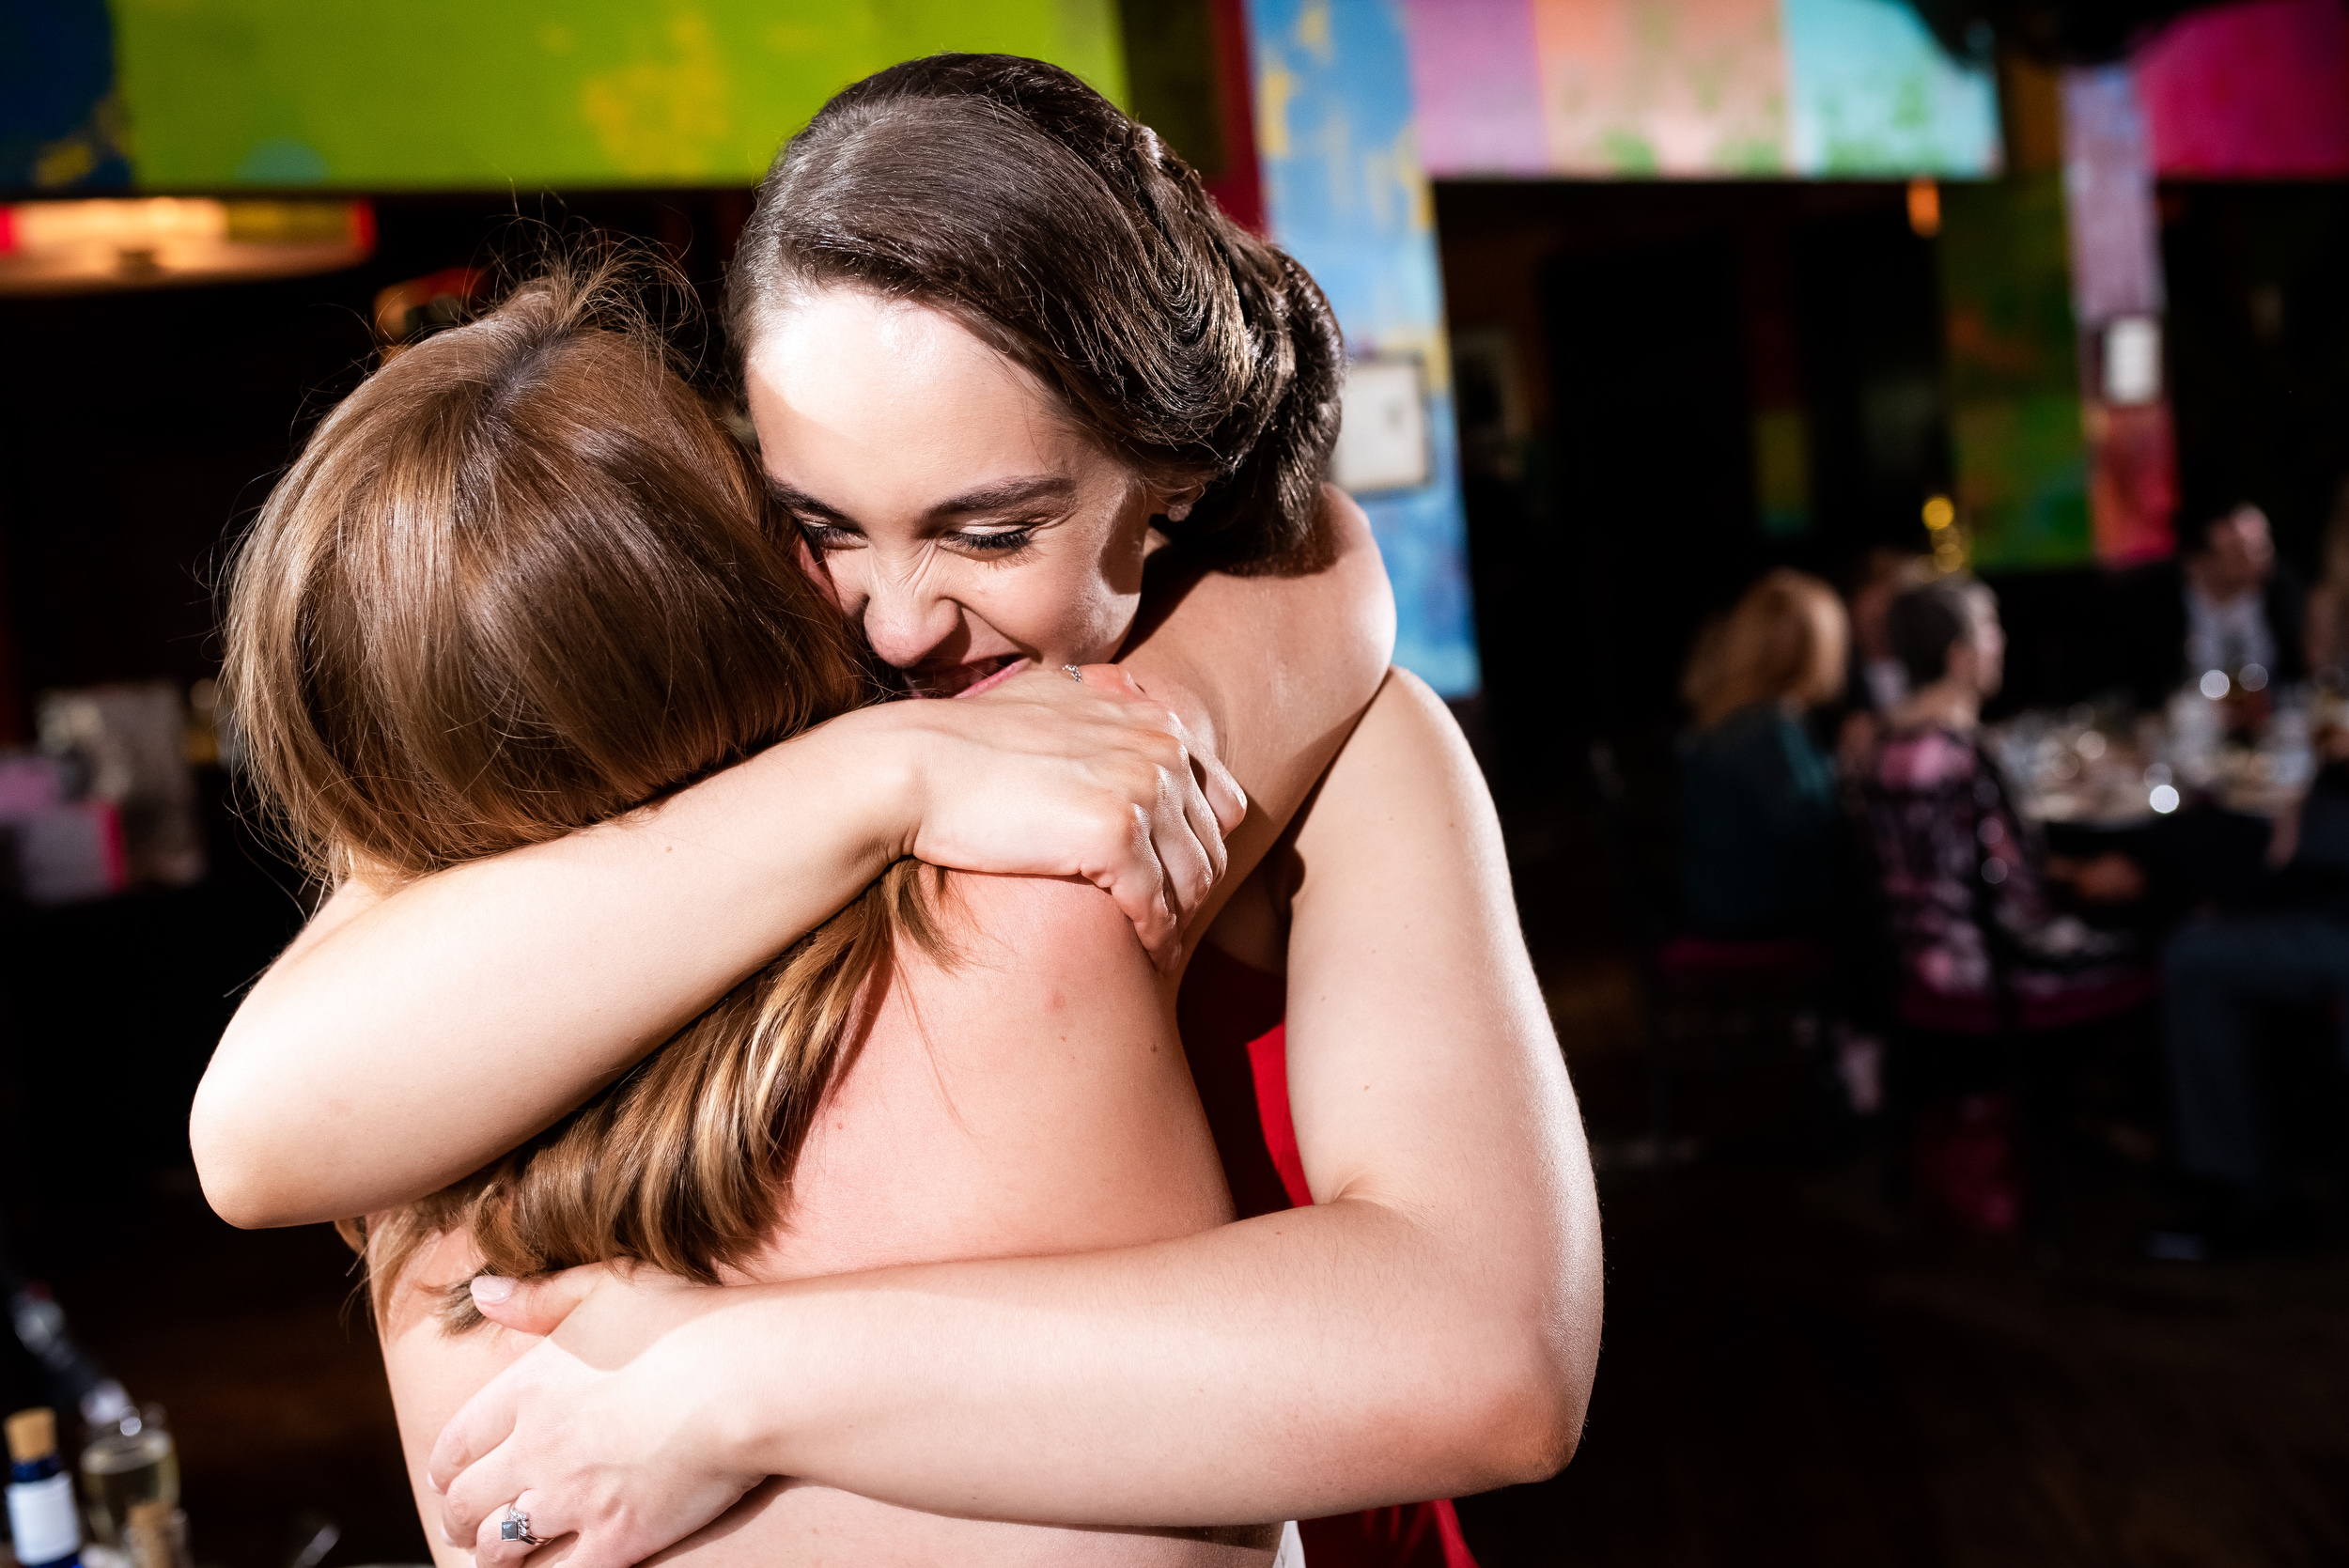 Maid of honor and bride share a hug for Carnivale Chicago wedding captured by J Brown Photography